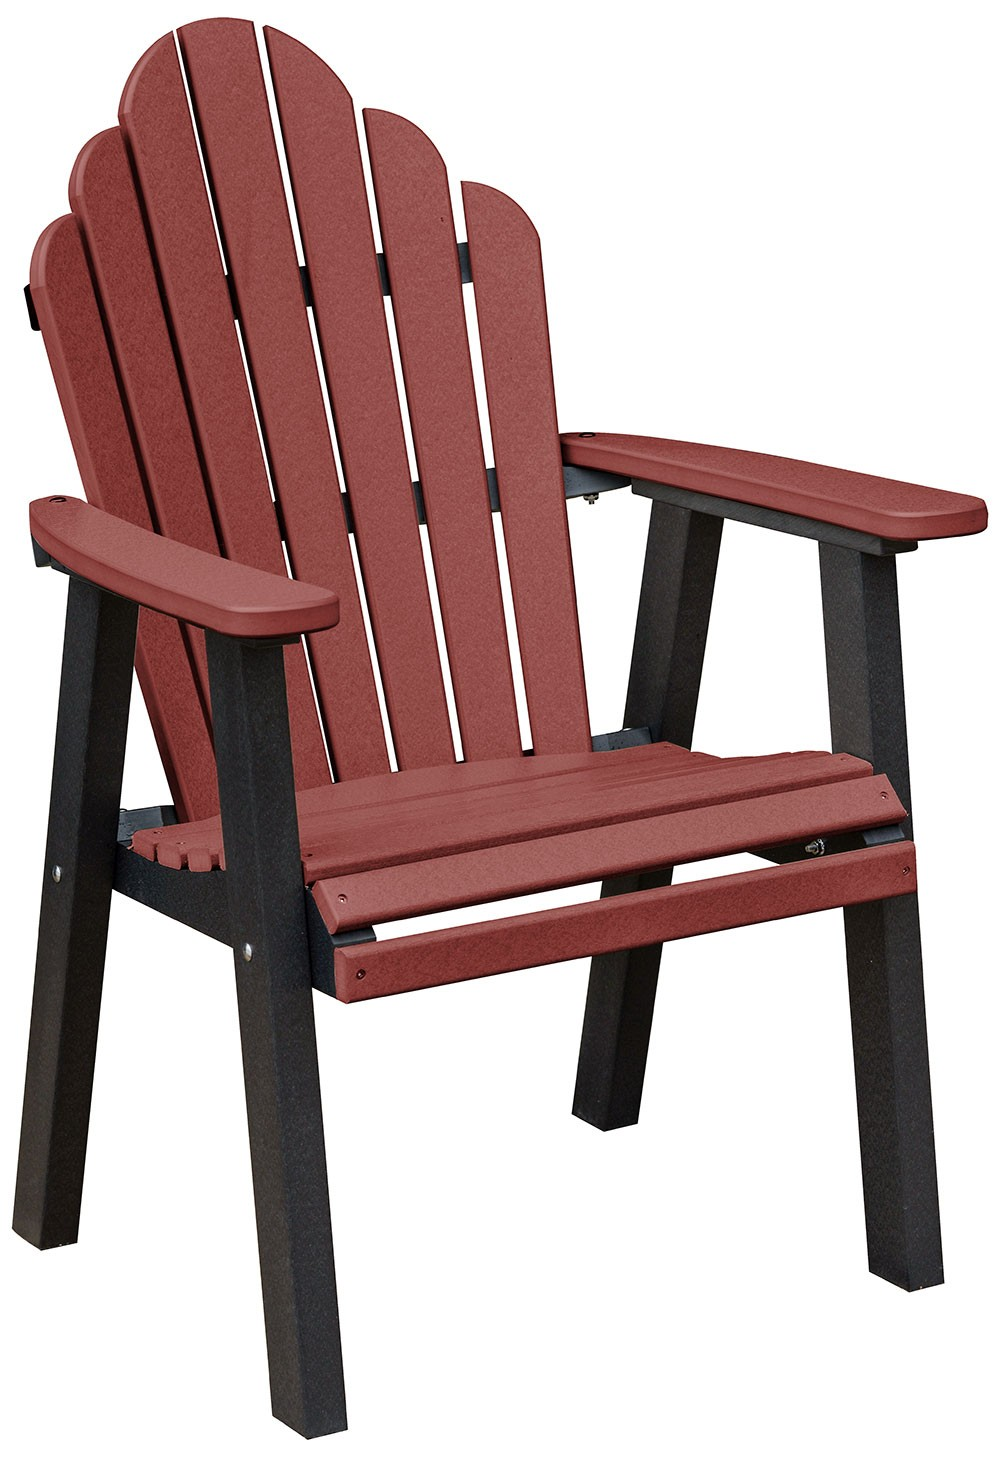 Adirondack Outdoor Patio Dining Chair Amish Made